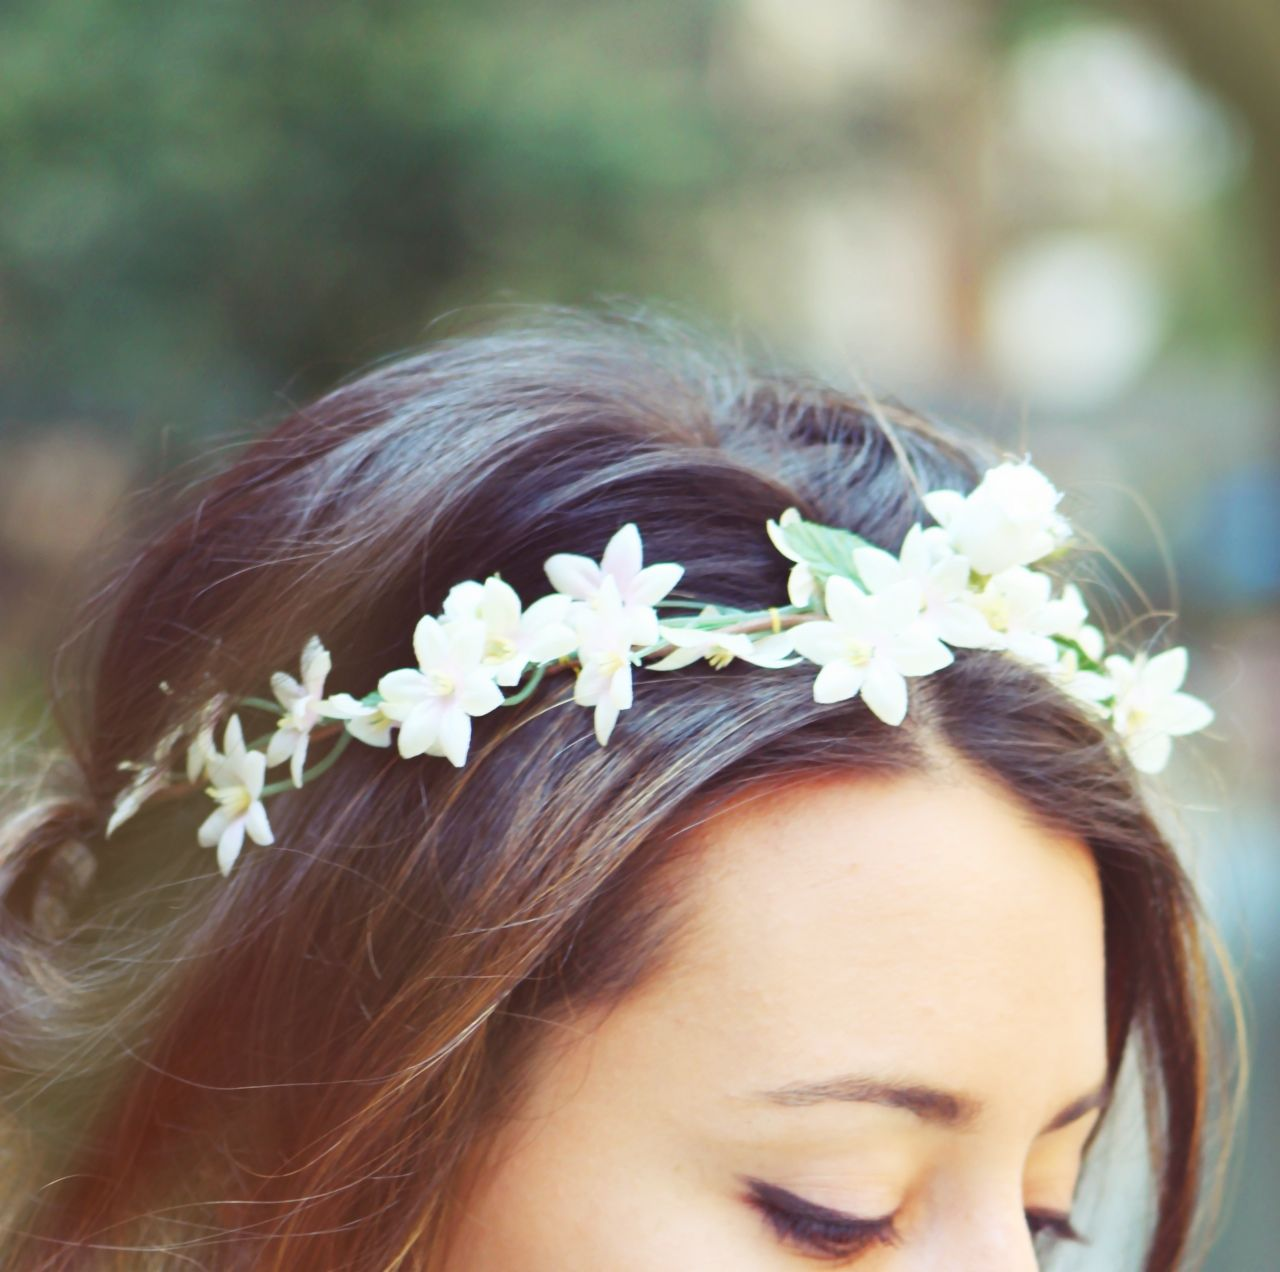 Wedding Flowers Crown For Fine Hairstyle: F The Haters, Wear A Flower Crown -